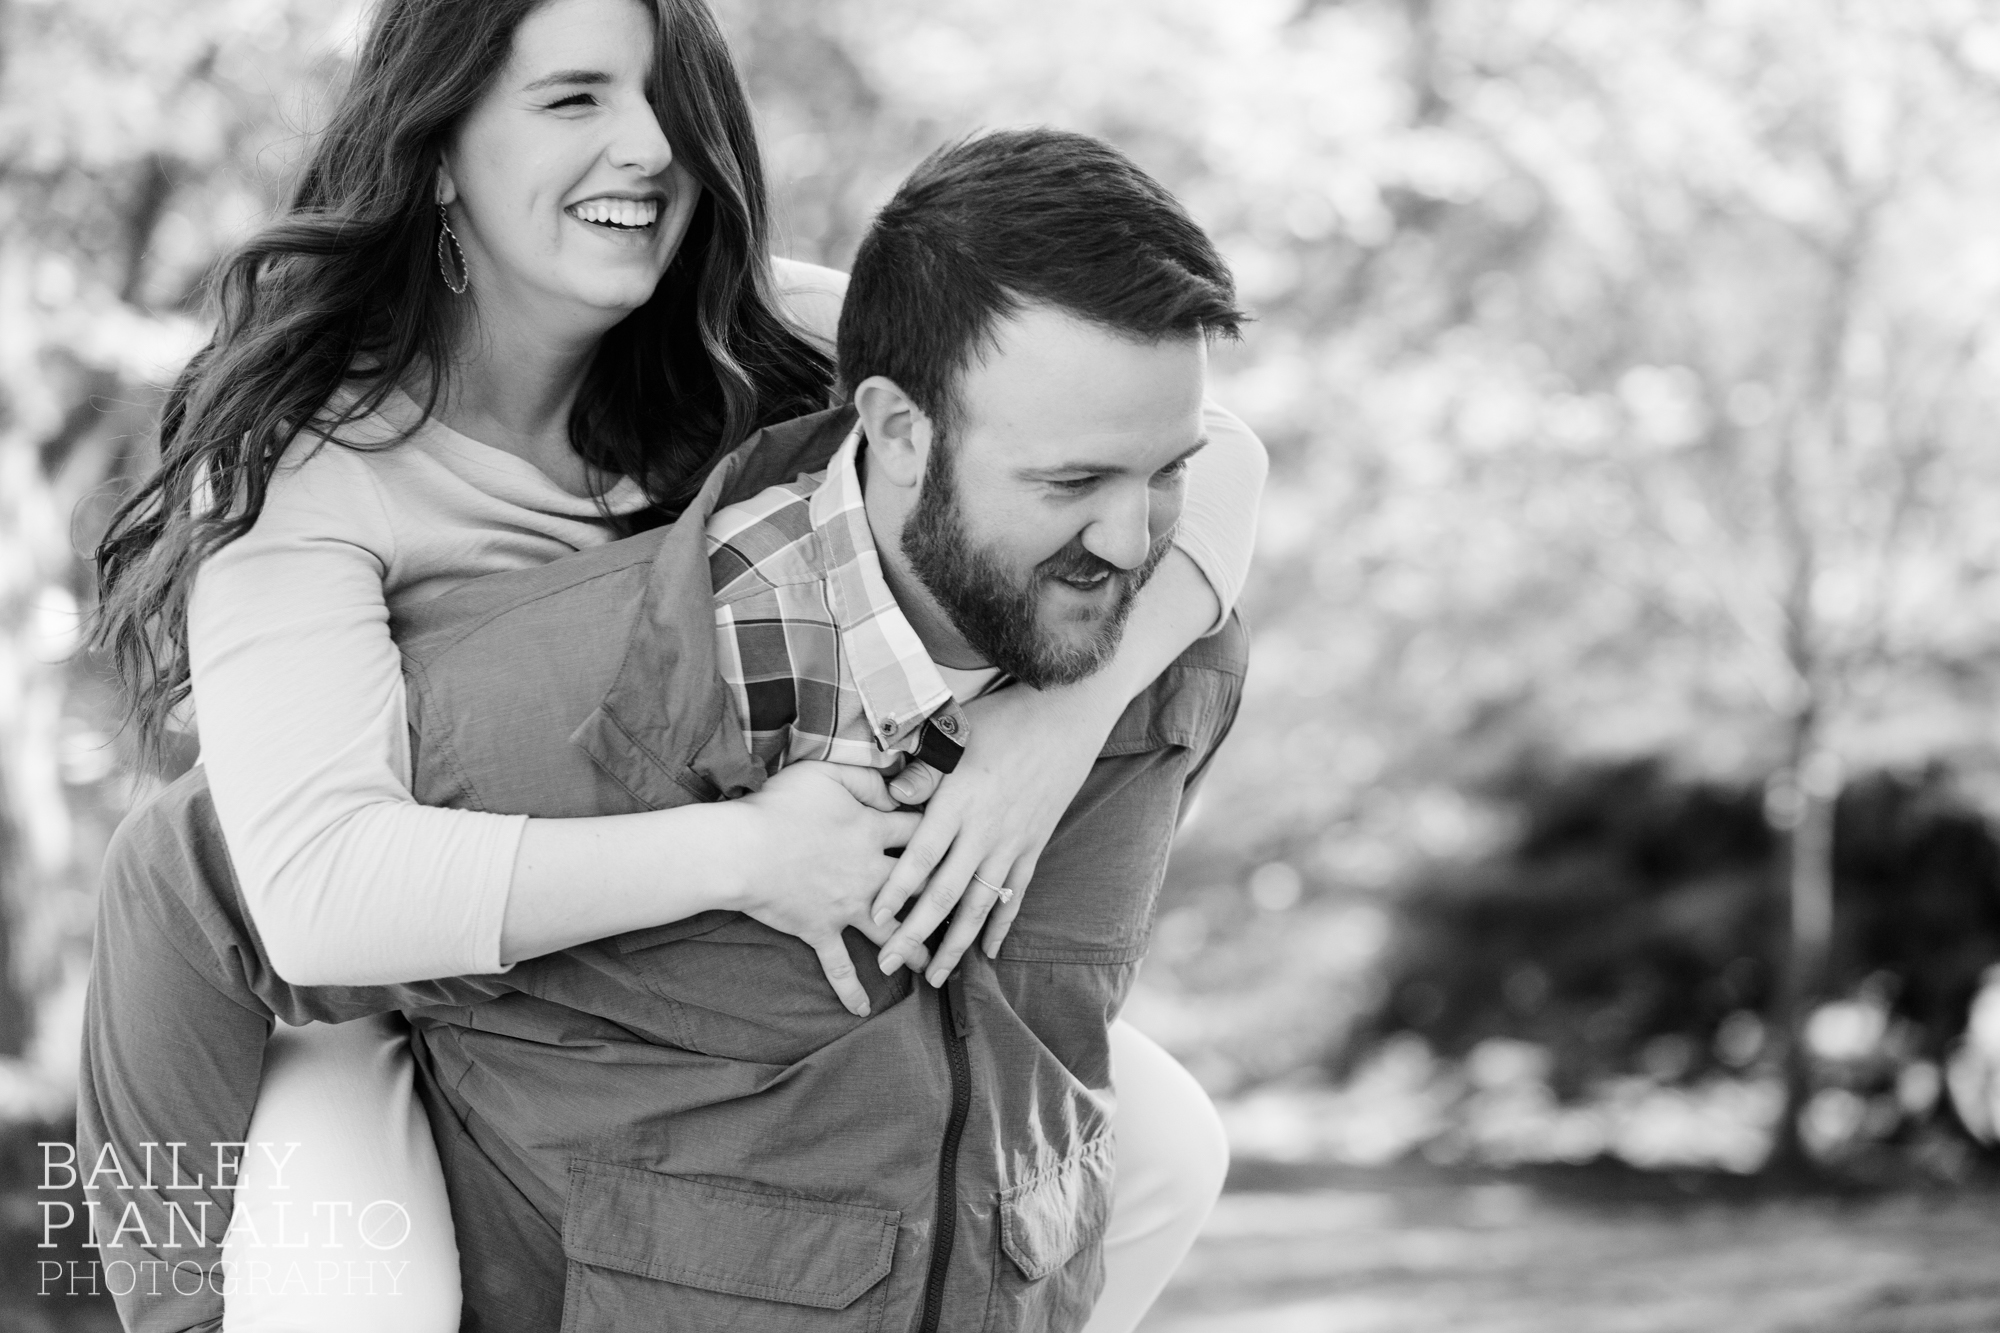 Green, Blue, and Mustard Spring Engagement Session Outfit Inspiration at the Nelson-Atkins Museum | Kansas City, MO